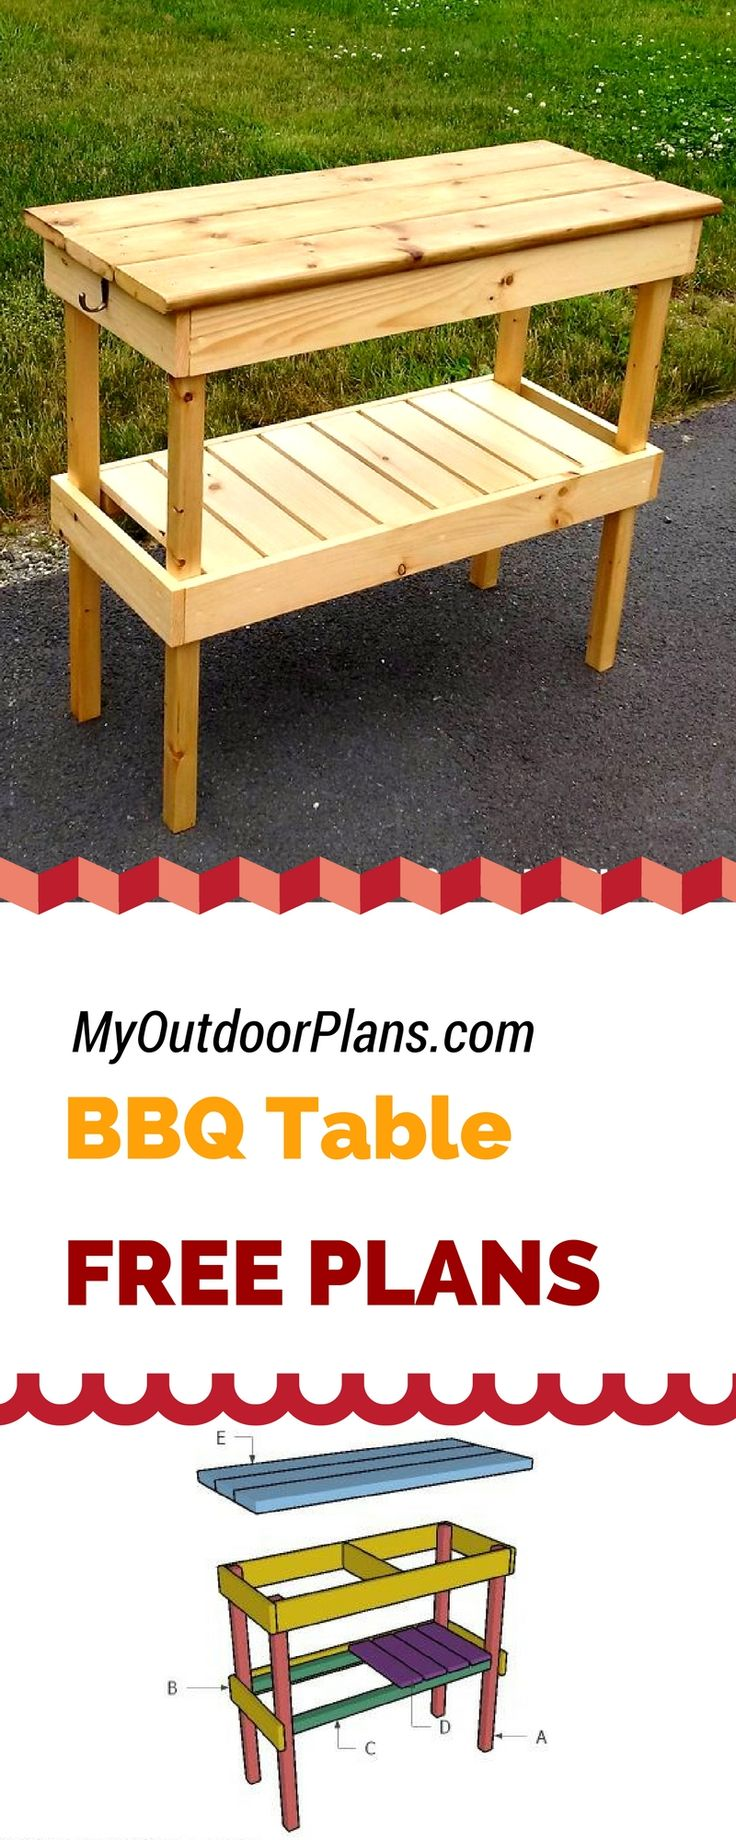 Easy to follow plans for you to build a bbq table for you backyard! Detailed tutorial on how to build a bbq table from common materials and tools! myoutdoorplans.com #diy #bbq